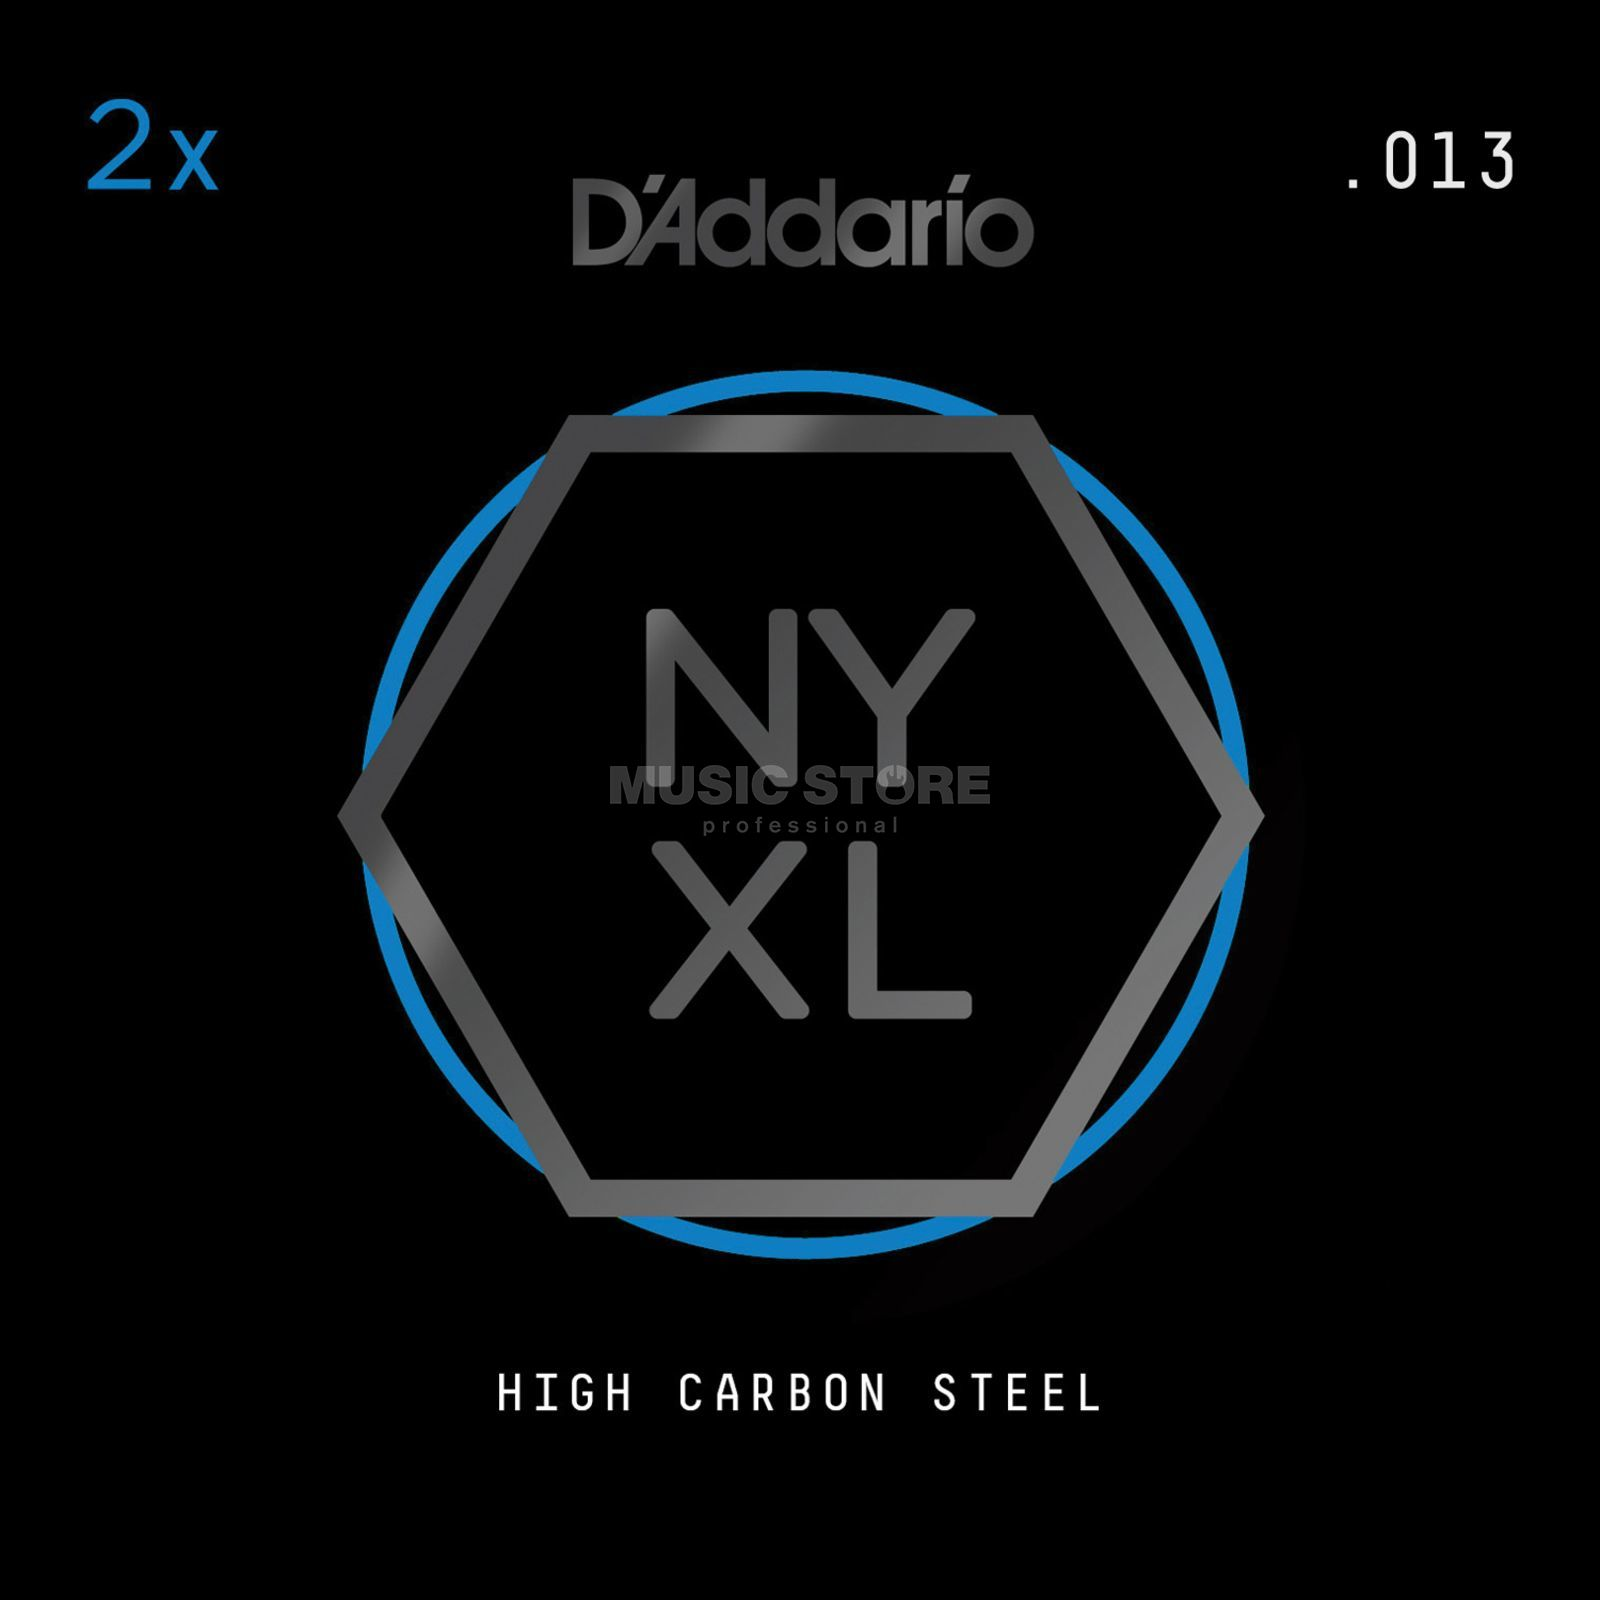 D'Addario NYPL013 Plain Single String 2-Pack - High Carbon Steel Imagem do produto